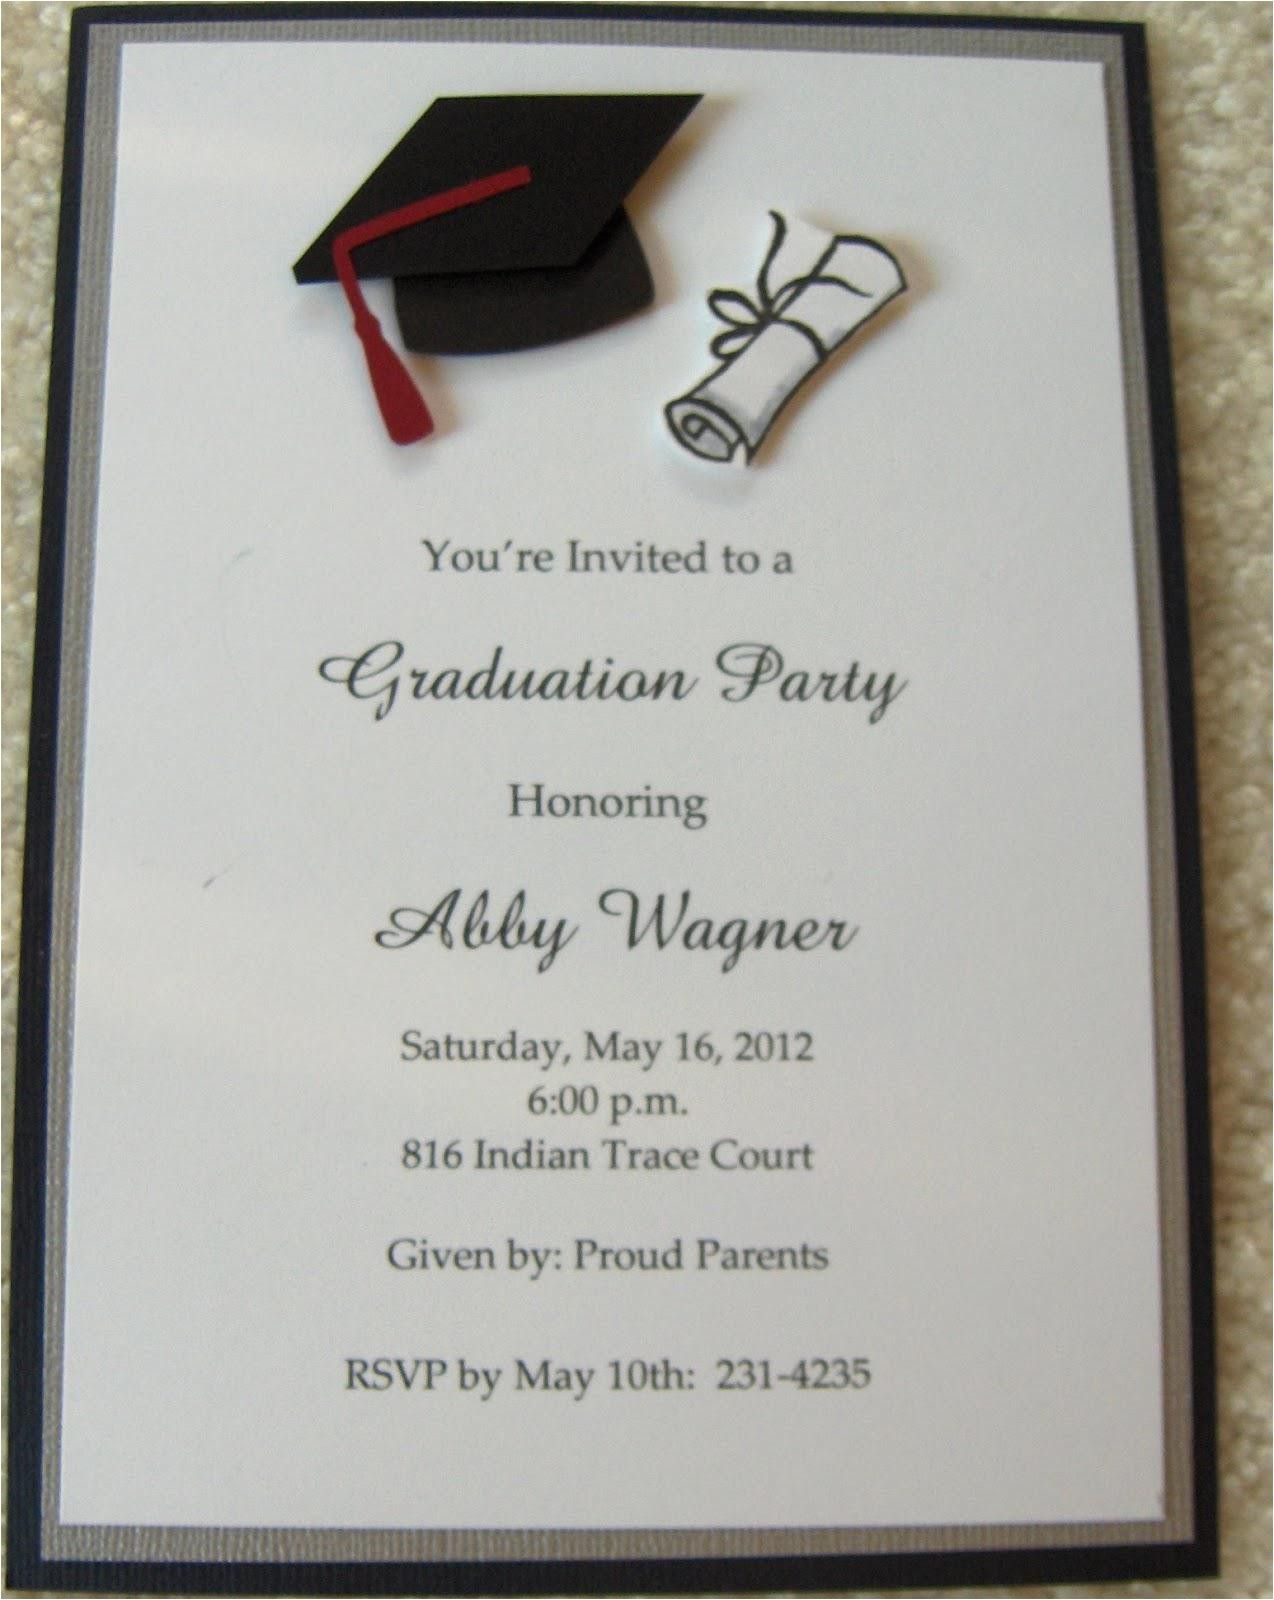 Pictures for Graduation Invitations College Graduation Party Invitations Party Invitations